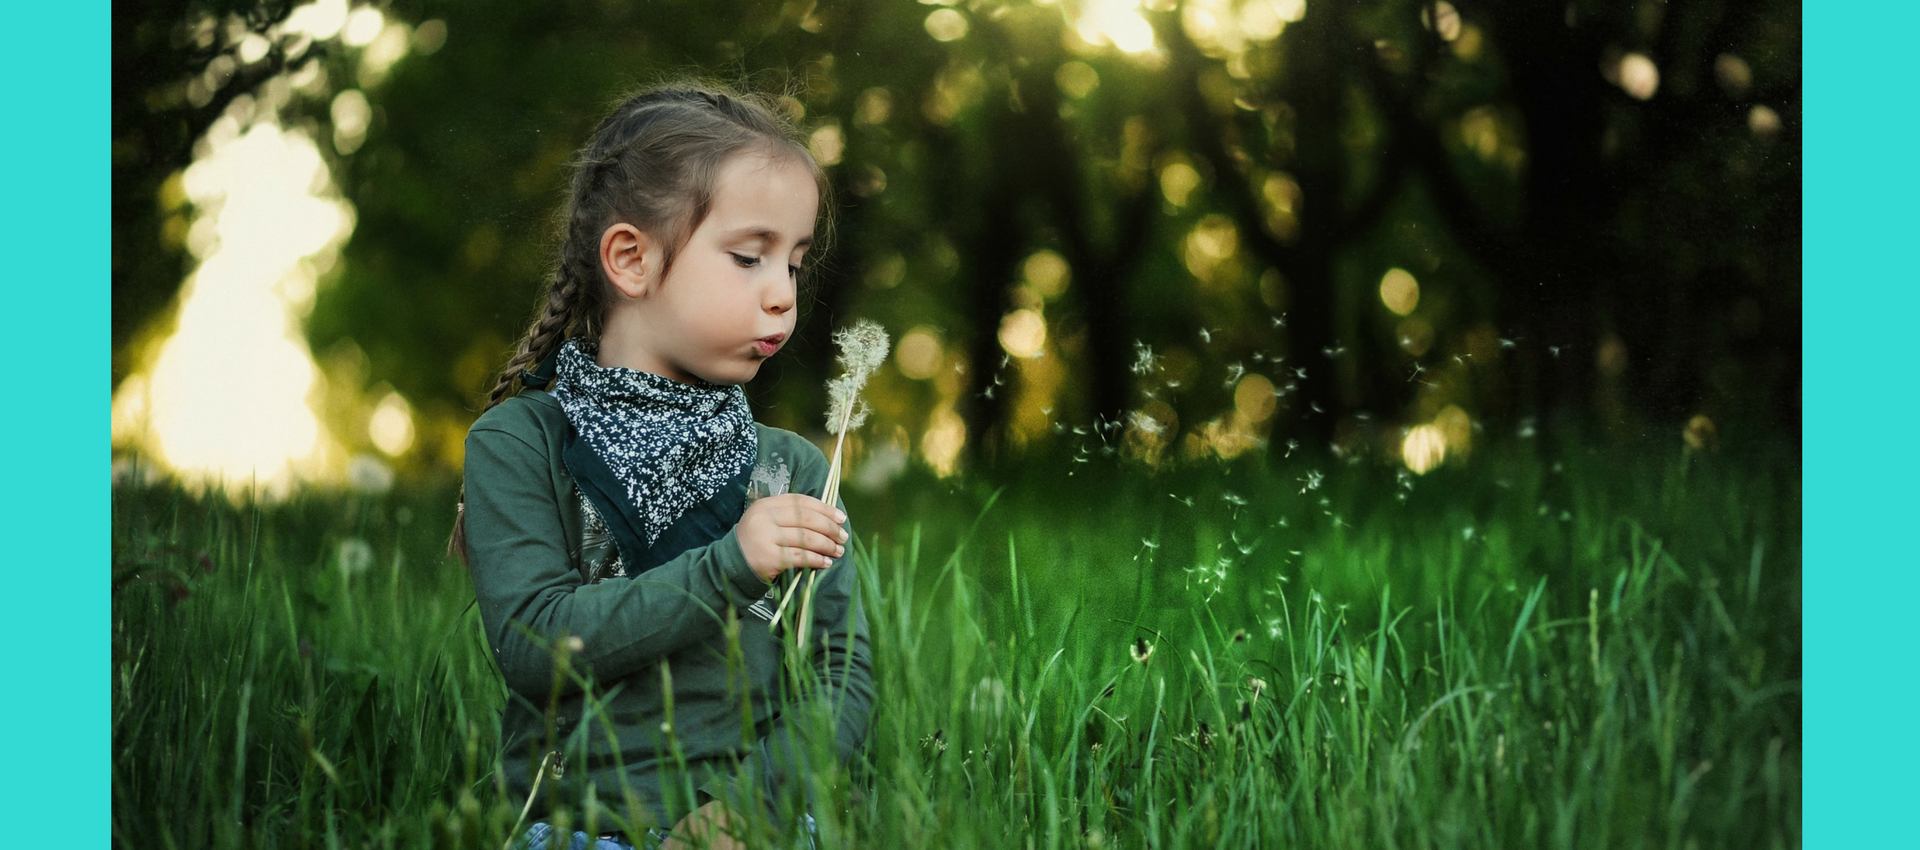 Mindfulness For Children -Healthy Benefits Of Meditation And Mindfulness